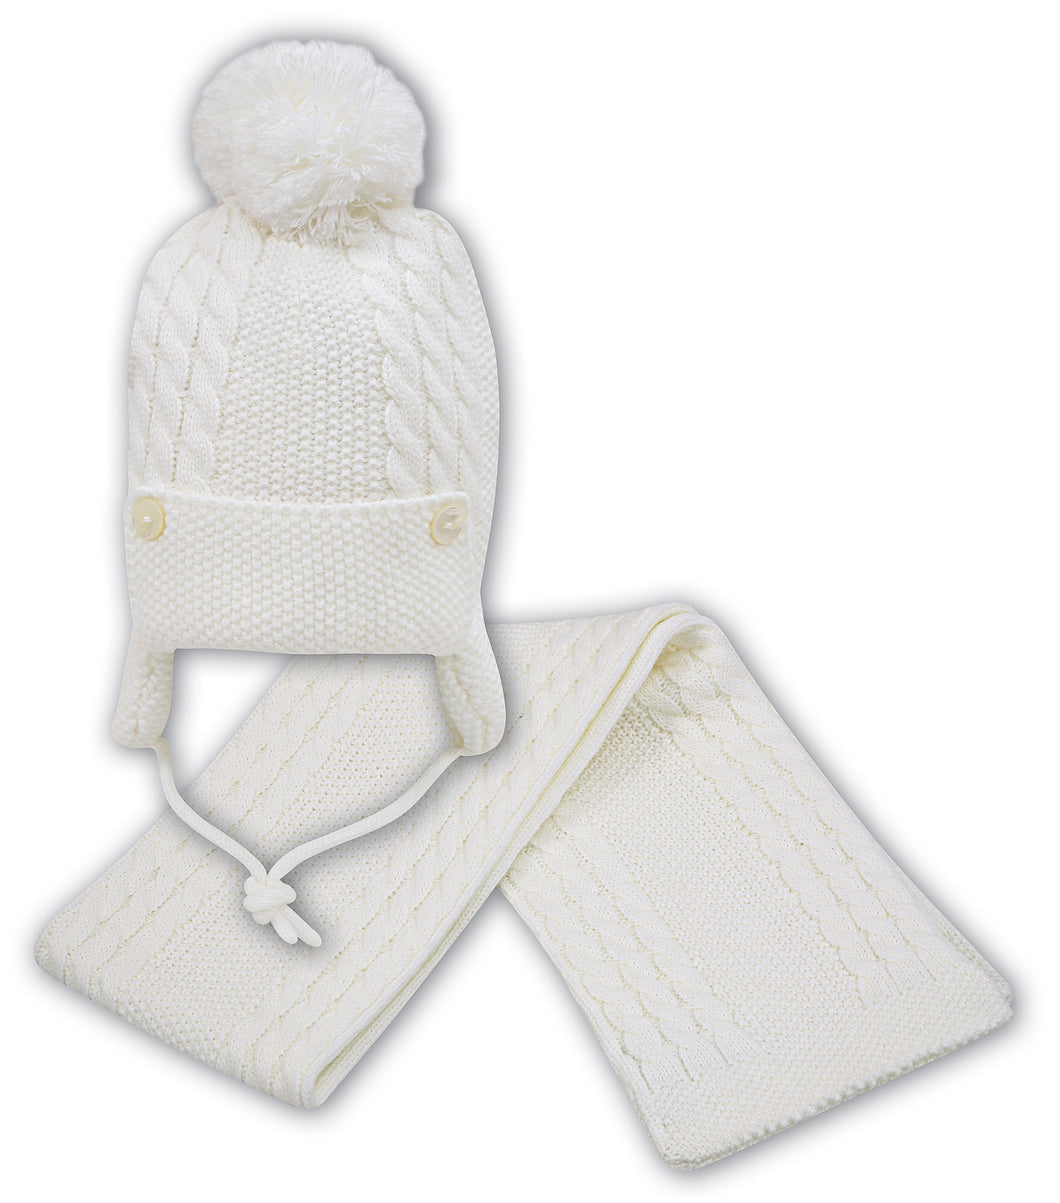 Baby Boys Chunky Cable Knit Pom Hat with Ear Protectors and under Chin Fastening. Button Detail on Front, Matching Scarf